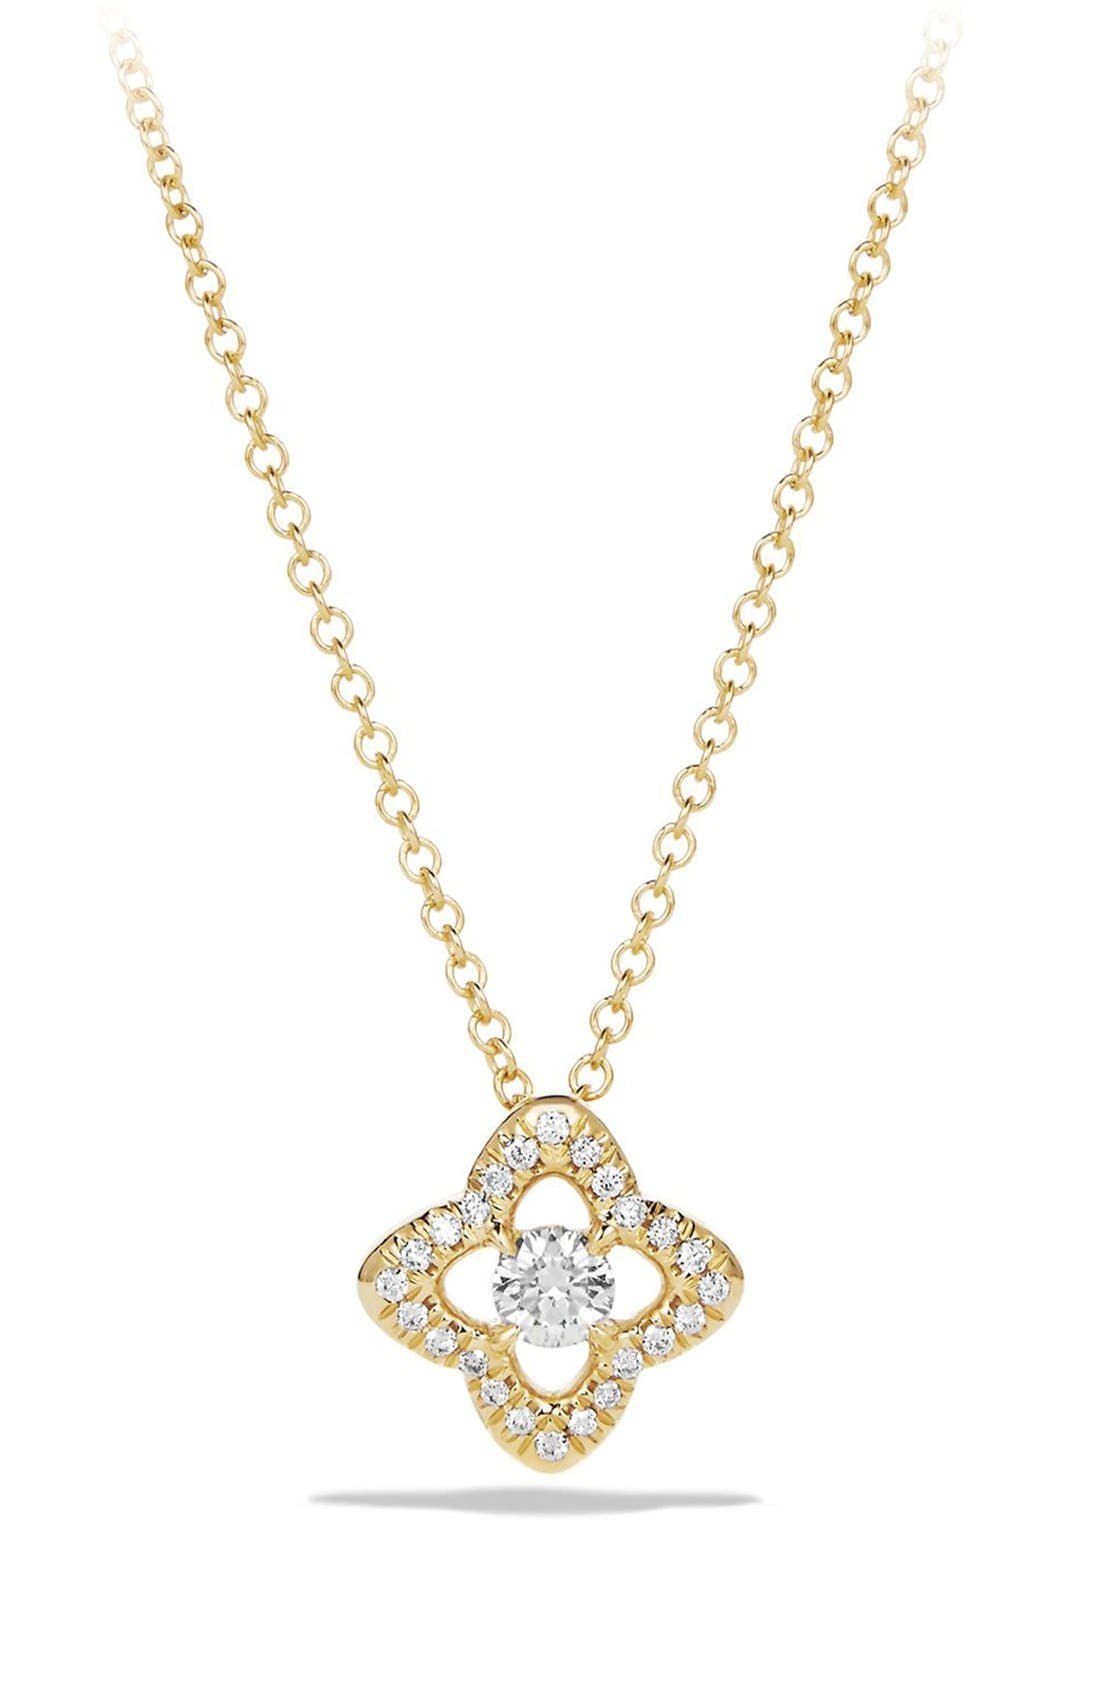 Alternate Image 1 Selected - David Yurman 'Venetian Quatrefoil' Necklace with Diamonds in Gold